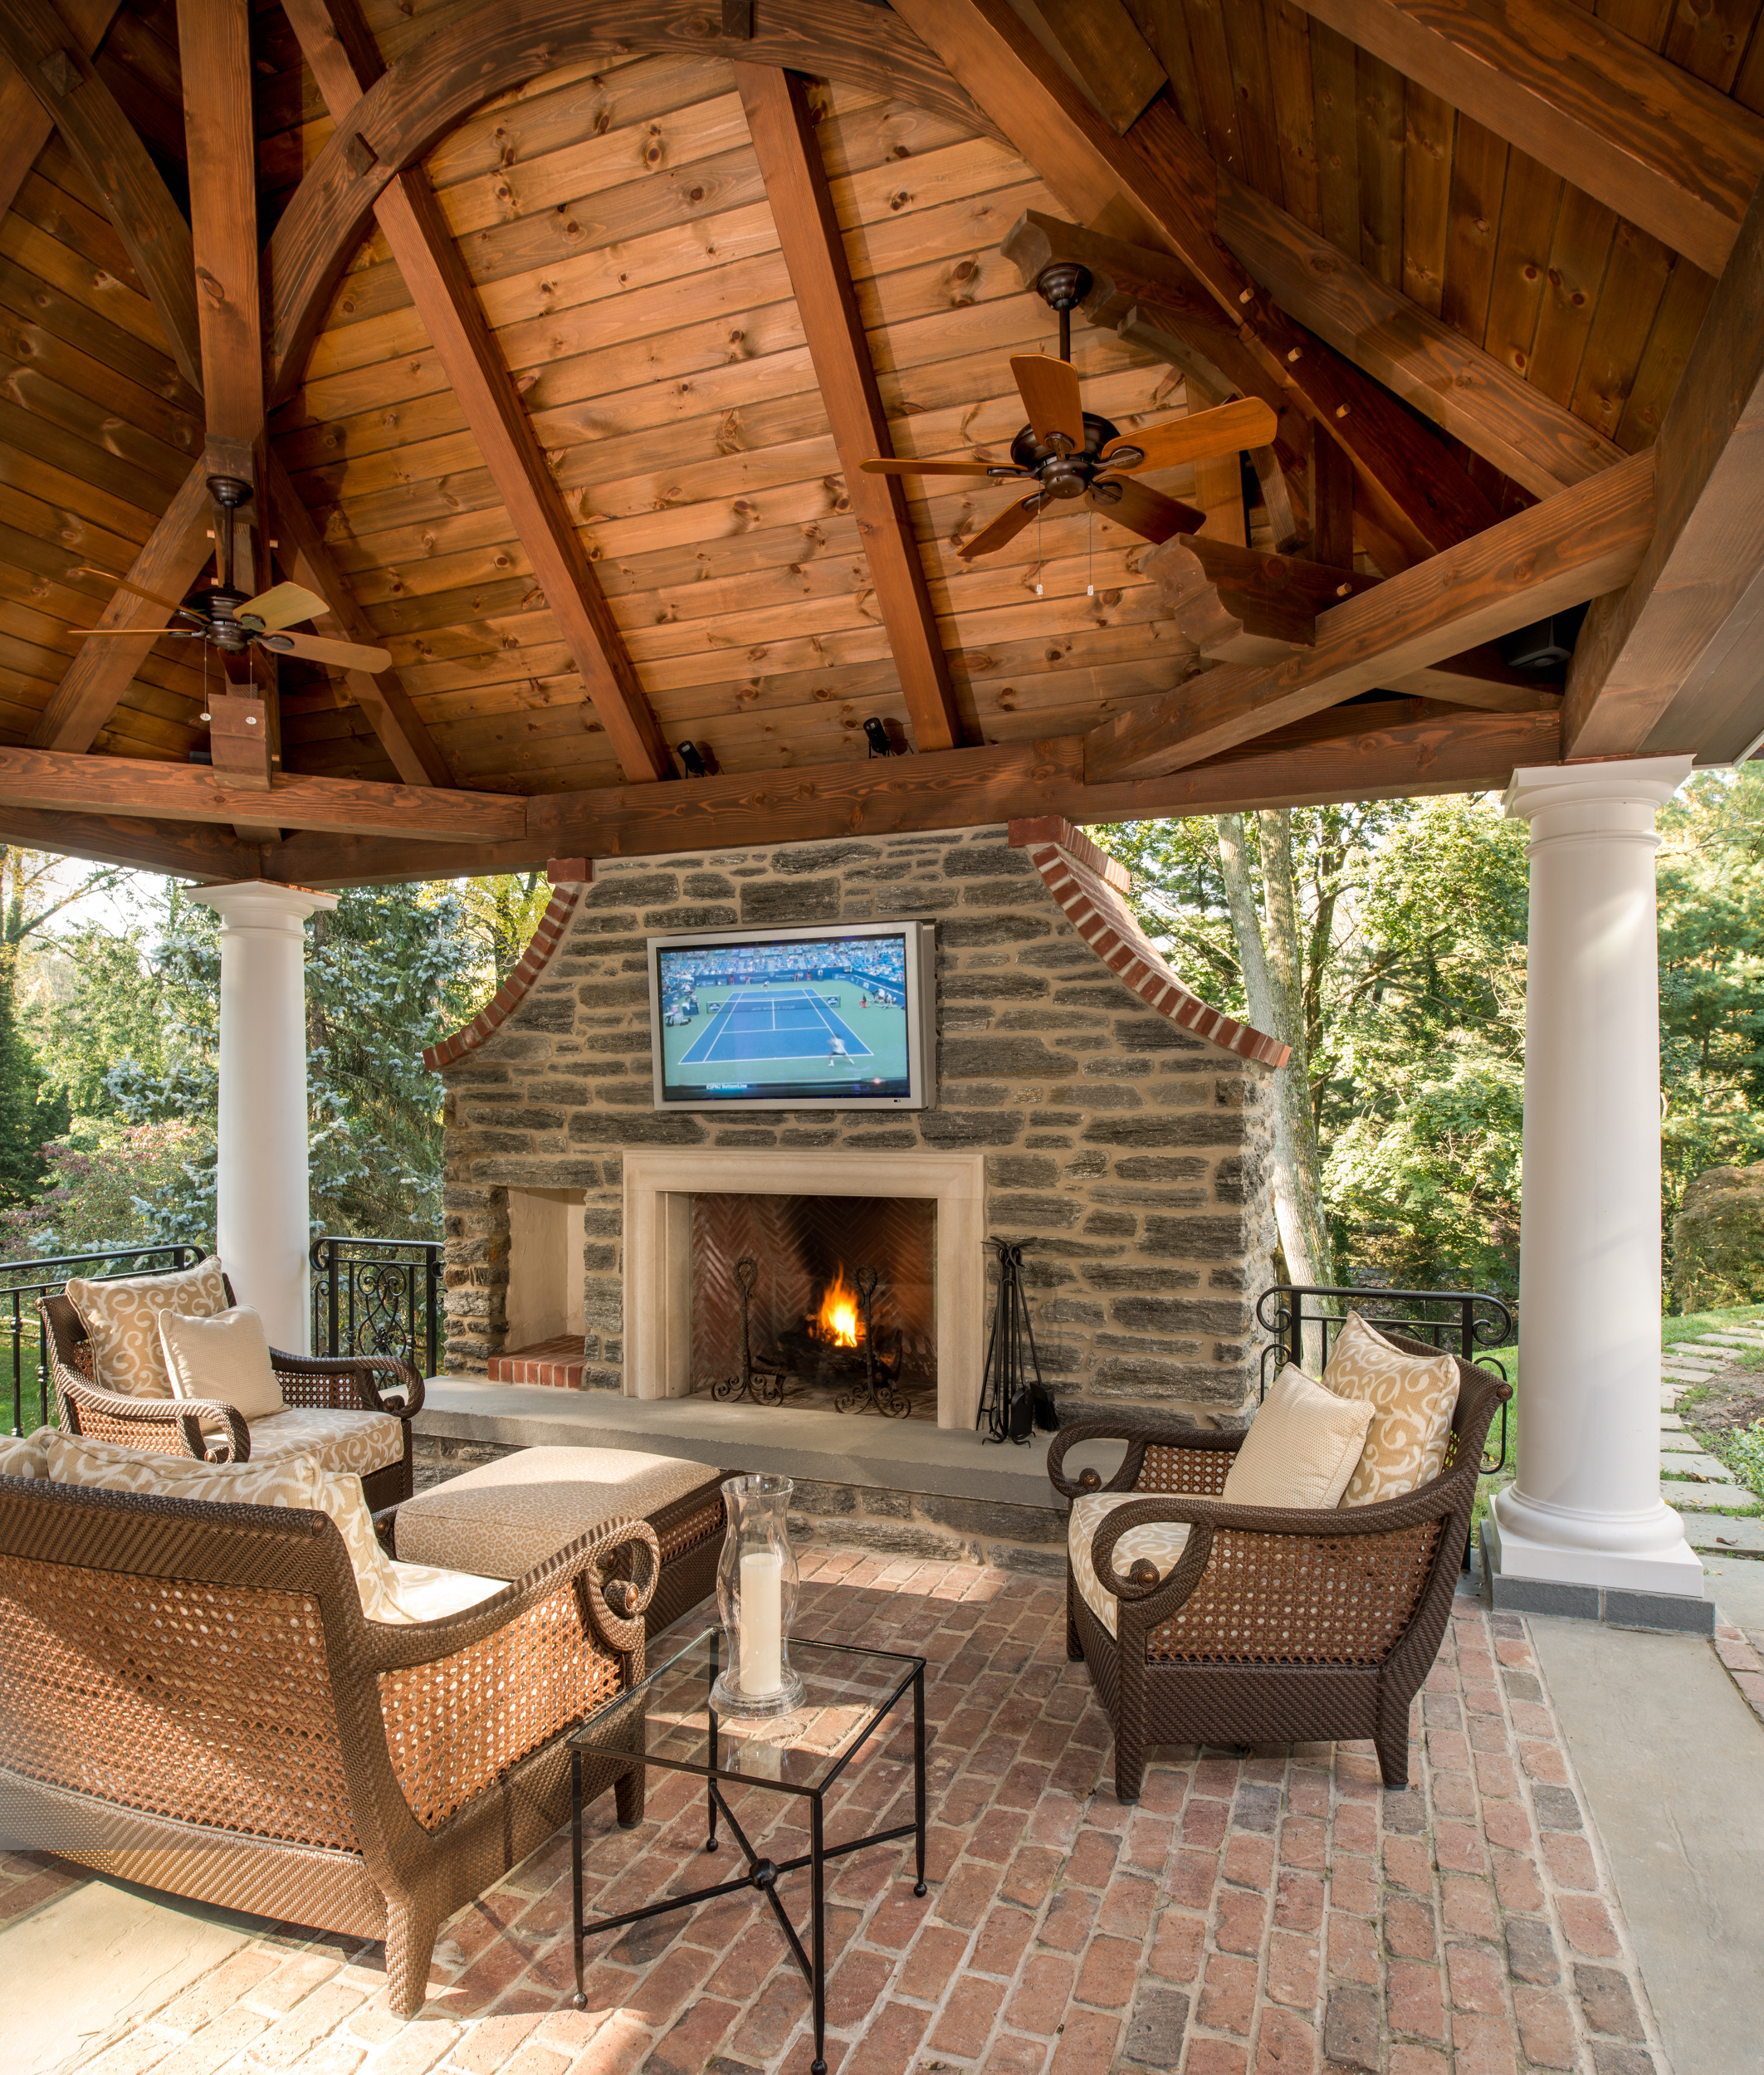 Timber frame pool house archives hugh lofting timber Outdoor fireplace design ideas